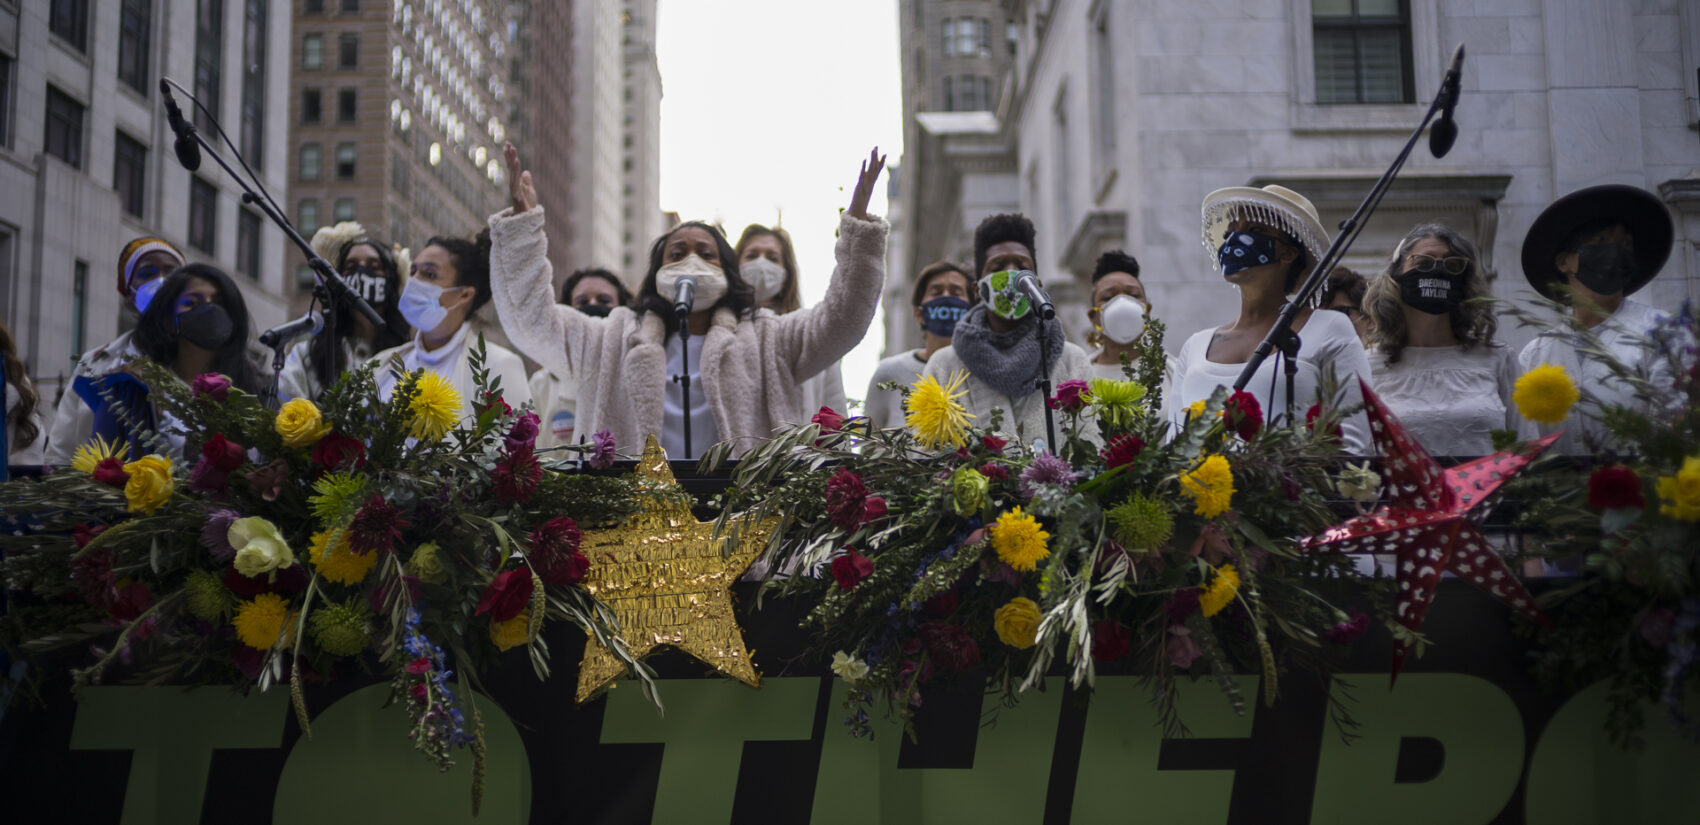 The Resistance Revival Chorus performs in front of City Hall, onboard a flatbed truck, as part of a voter motivational effort called